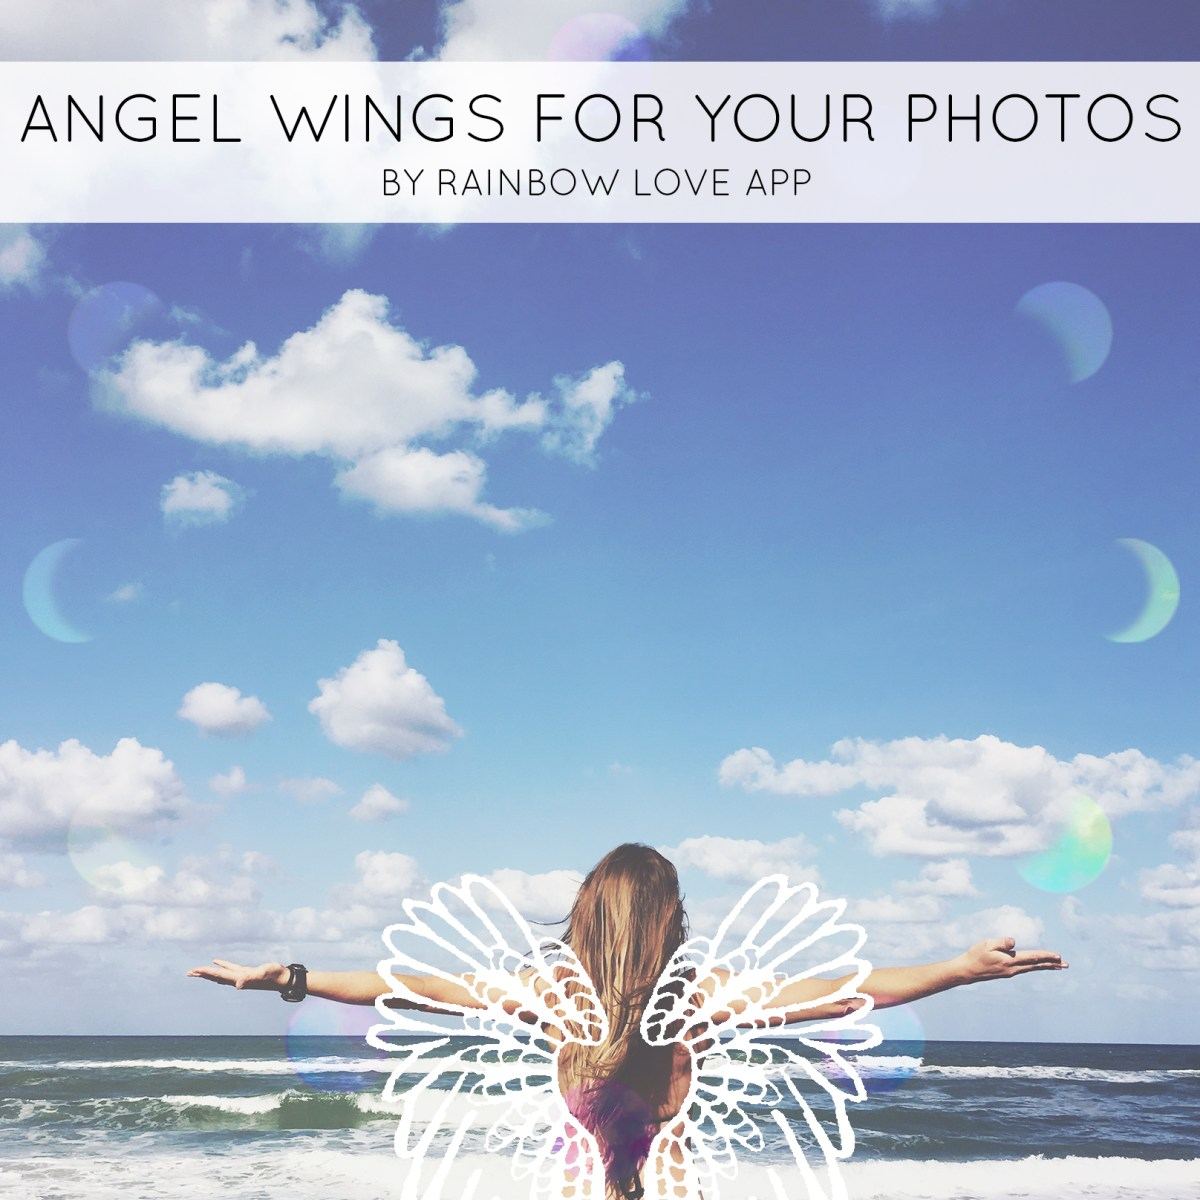 angel-wings-for-your-photos-angel-effect-photo-editor-rainbow-love-app-angels-wing-photo-editing-art-and-filters-best-rainbow-love-app-10